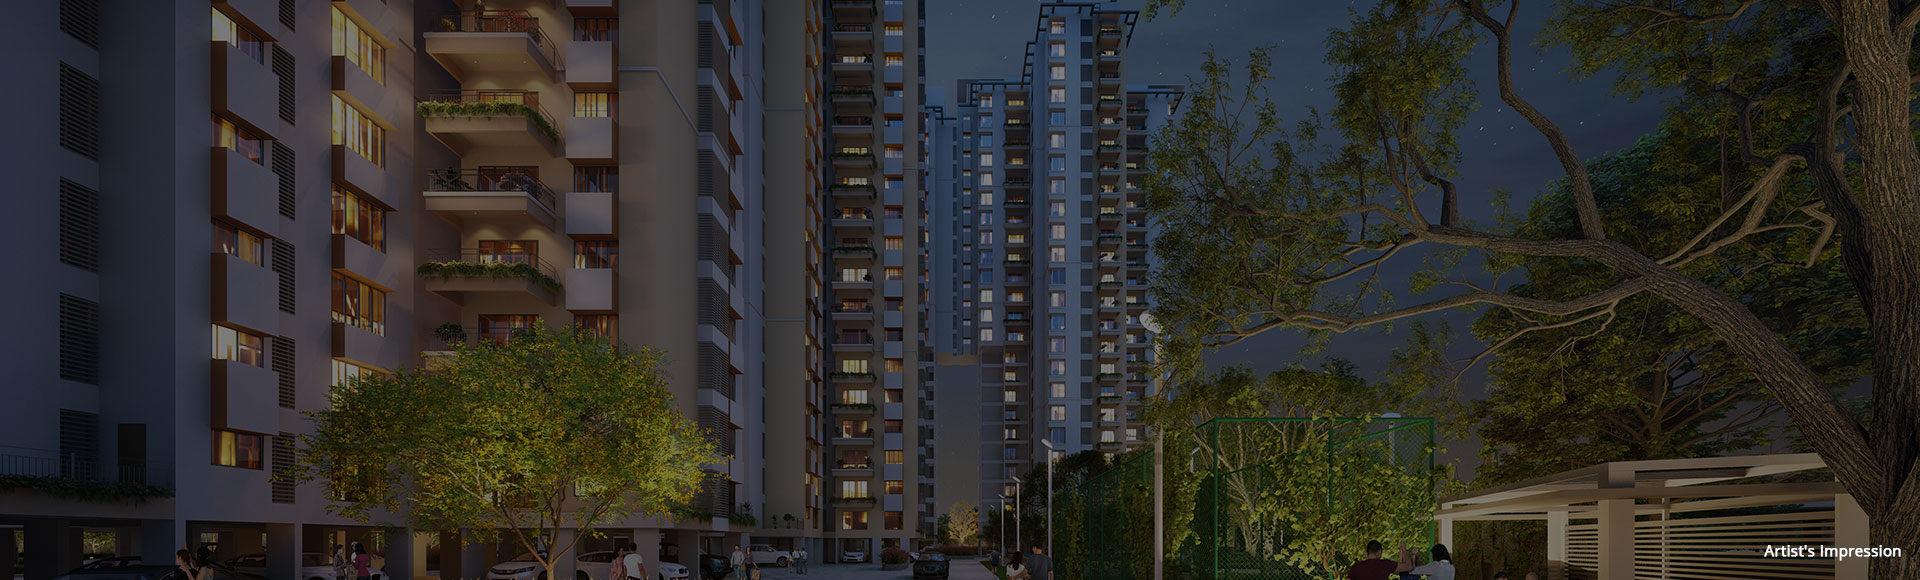 Kolte Patil itowers-exente